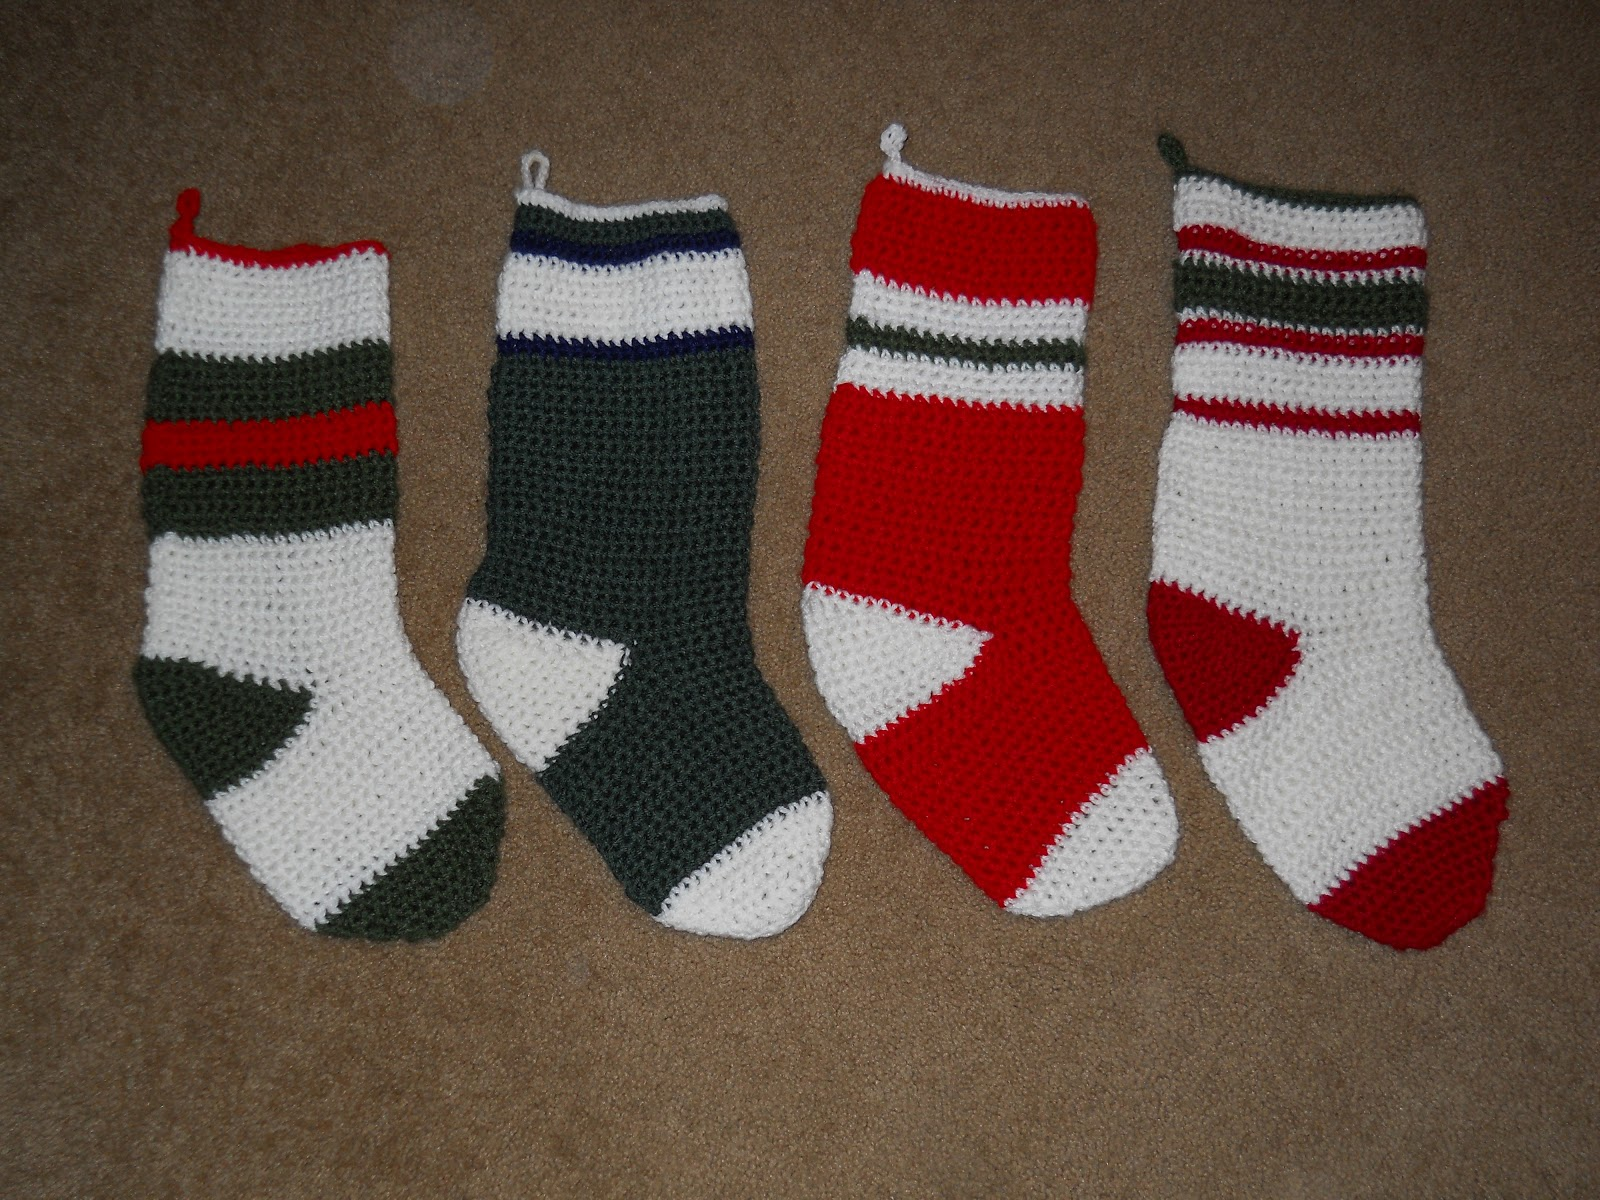 Crochet Pattern Central Christmas Stockings : Crafting Central: Crocheted Stockings